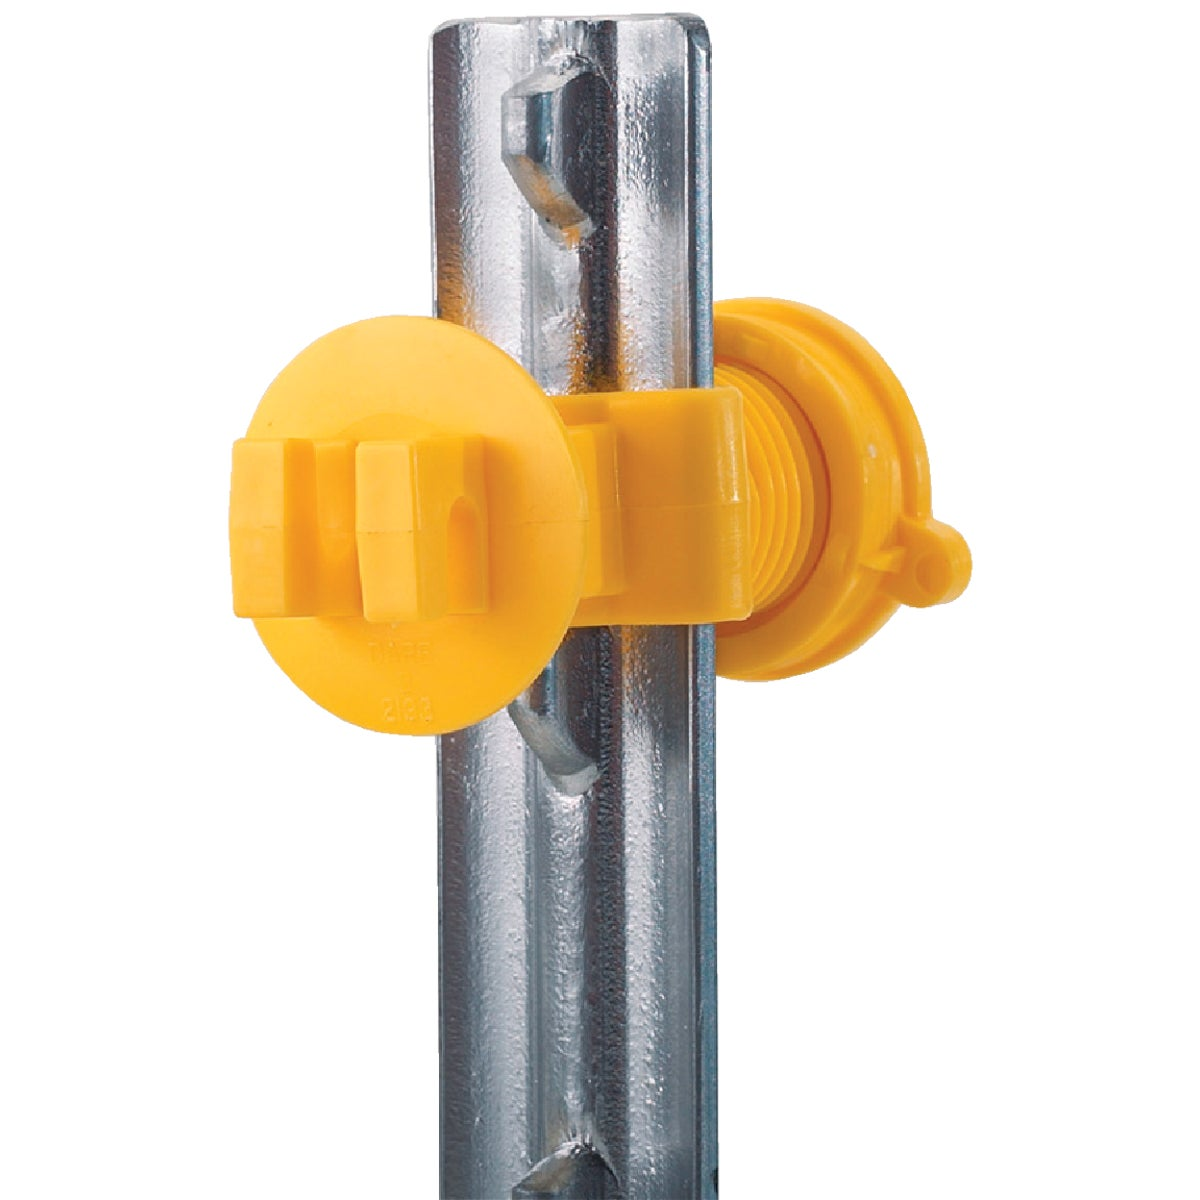 25 WEST TPOST INSULATOR - 2193-25 by Dare Products Inc